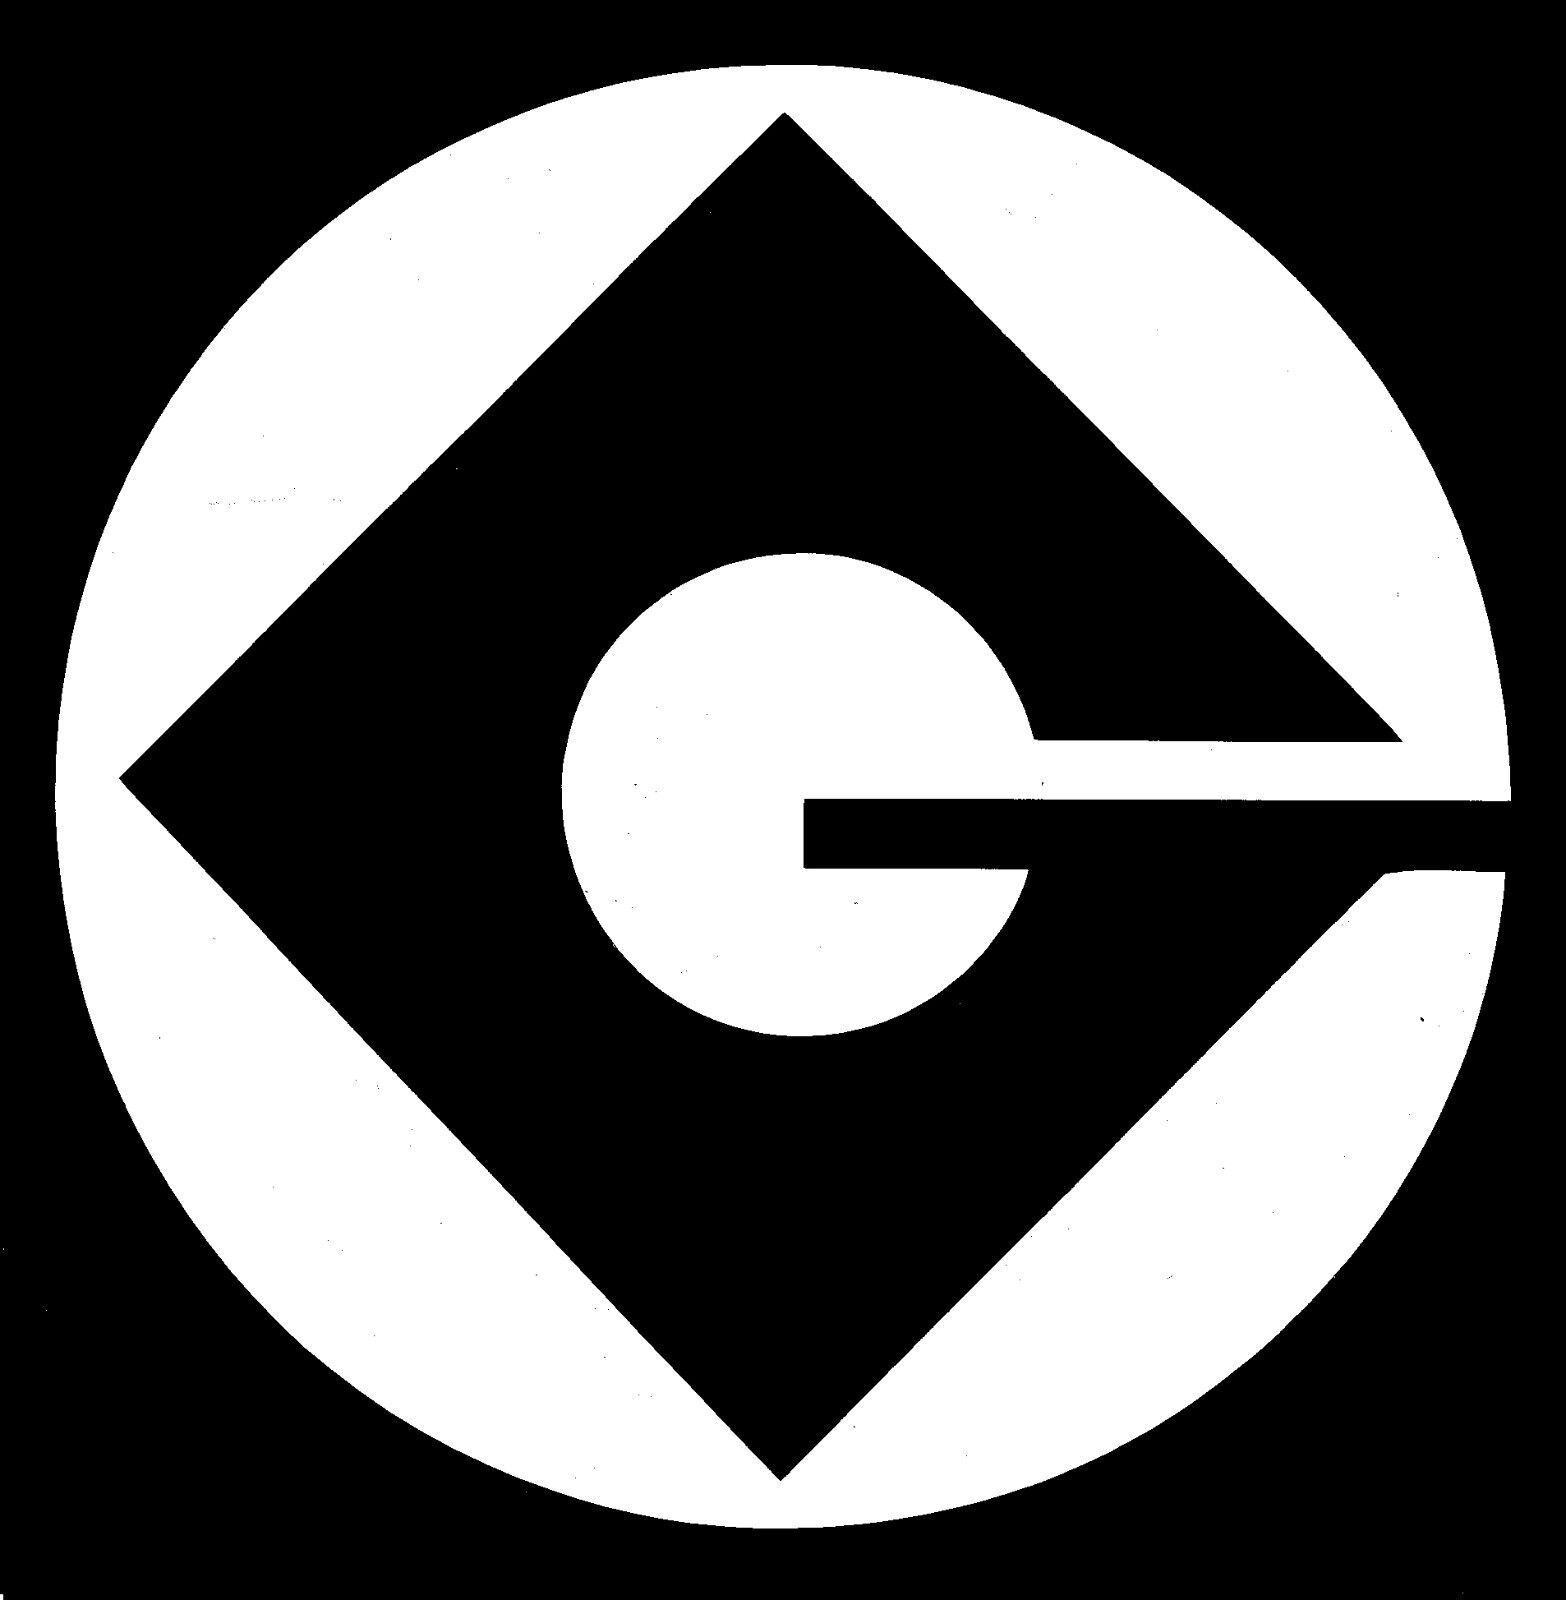 Gru G Logo From Despicable Me And Minion Movies Vinyl Decal